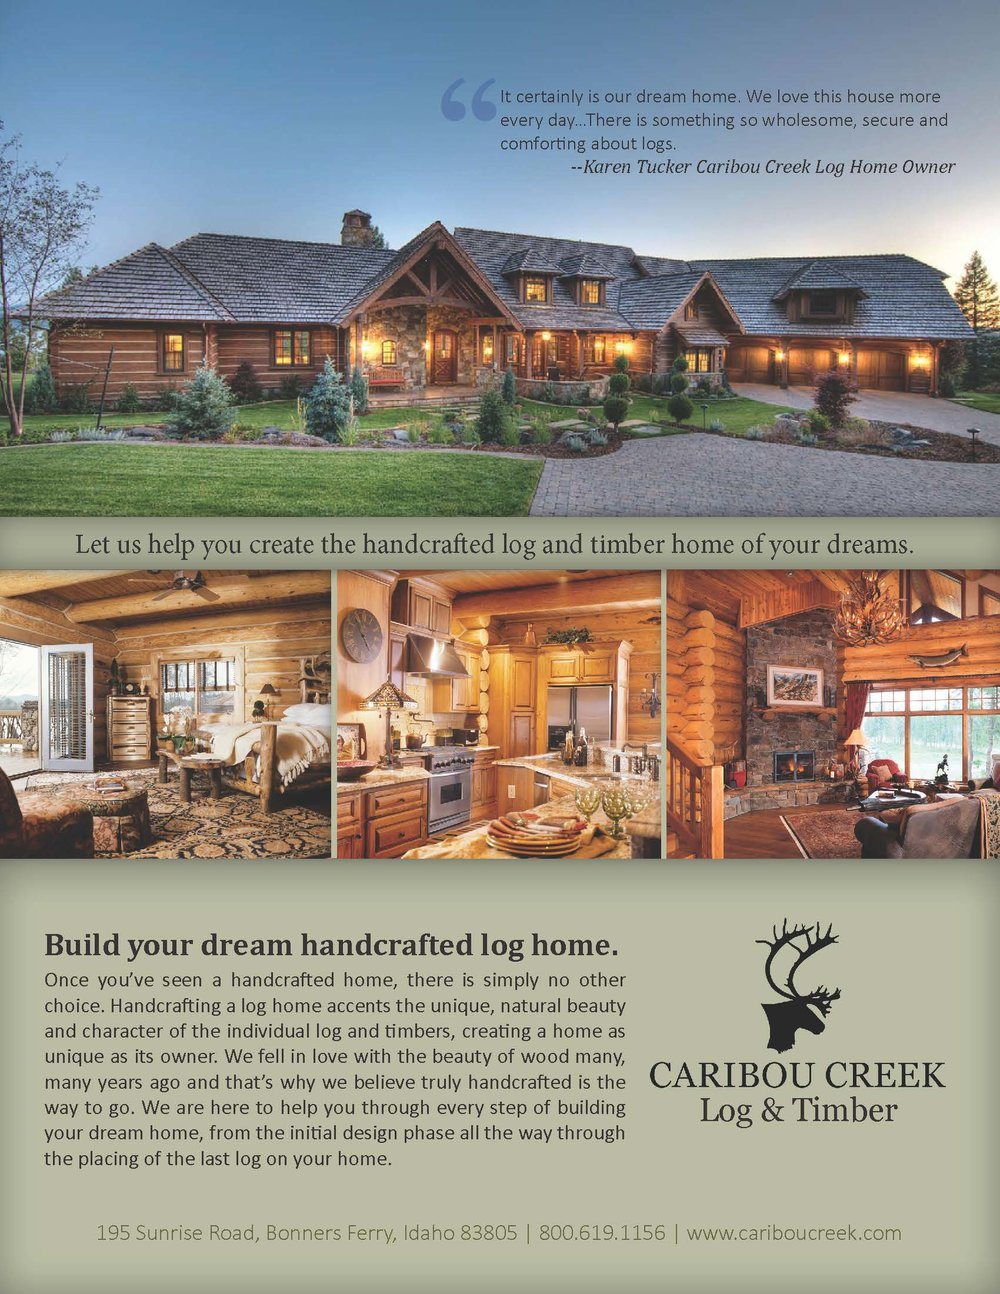 Full-page ad layout for Caribou Creek Log and Timber http://www.cariboucreek.com/